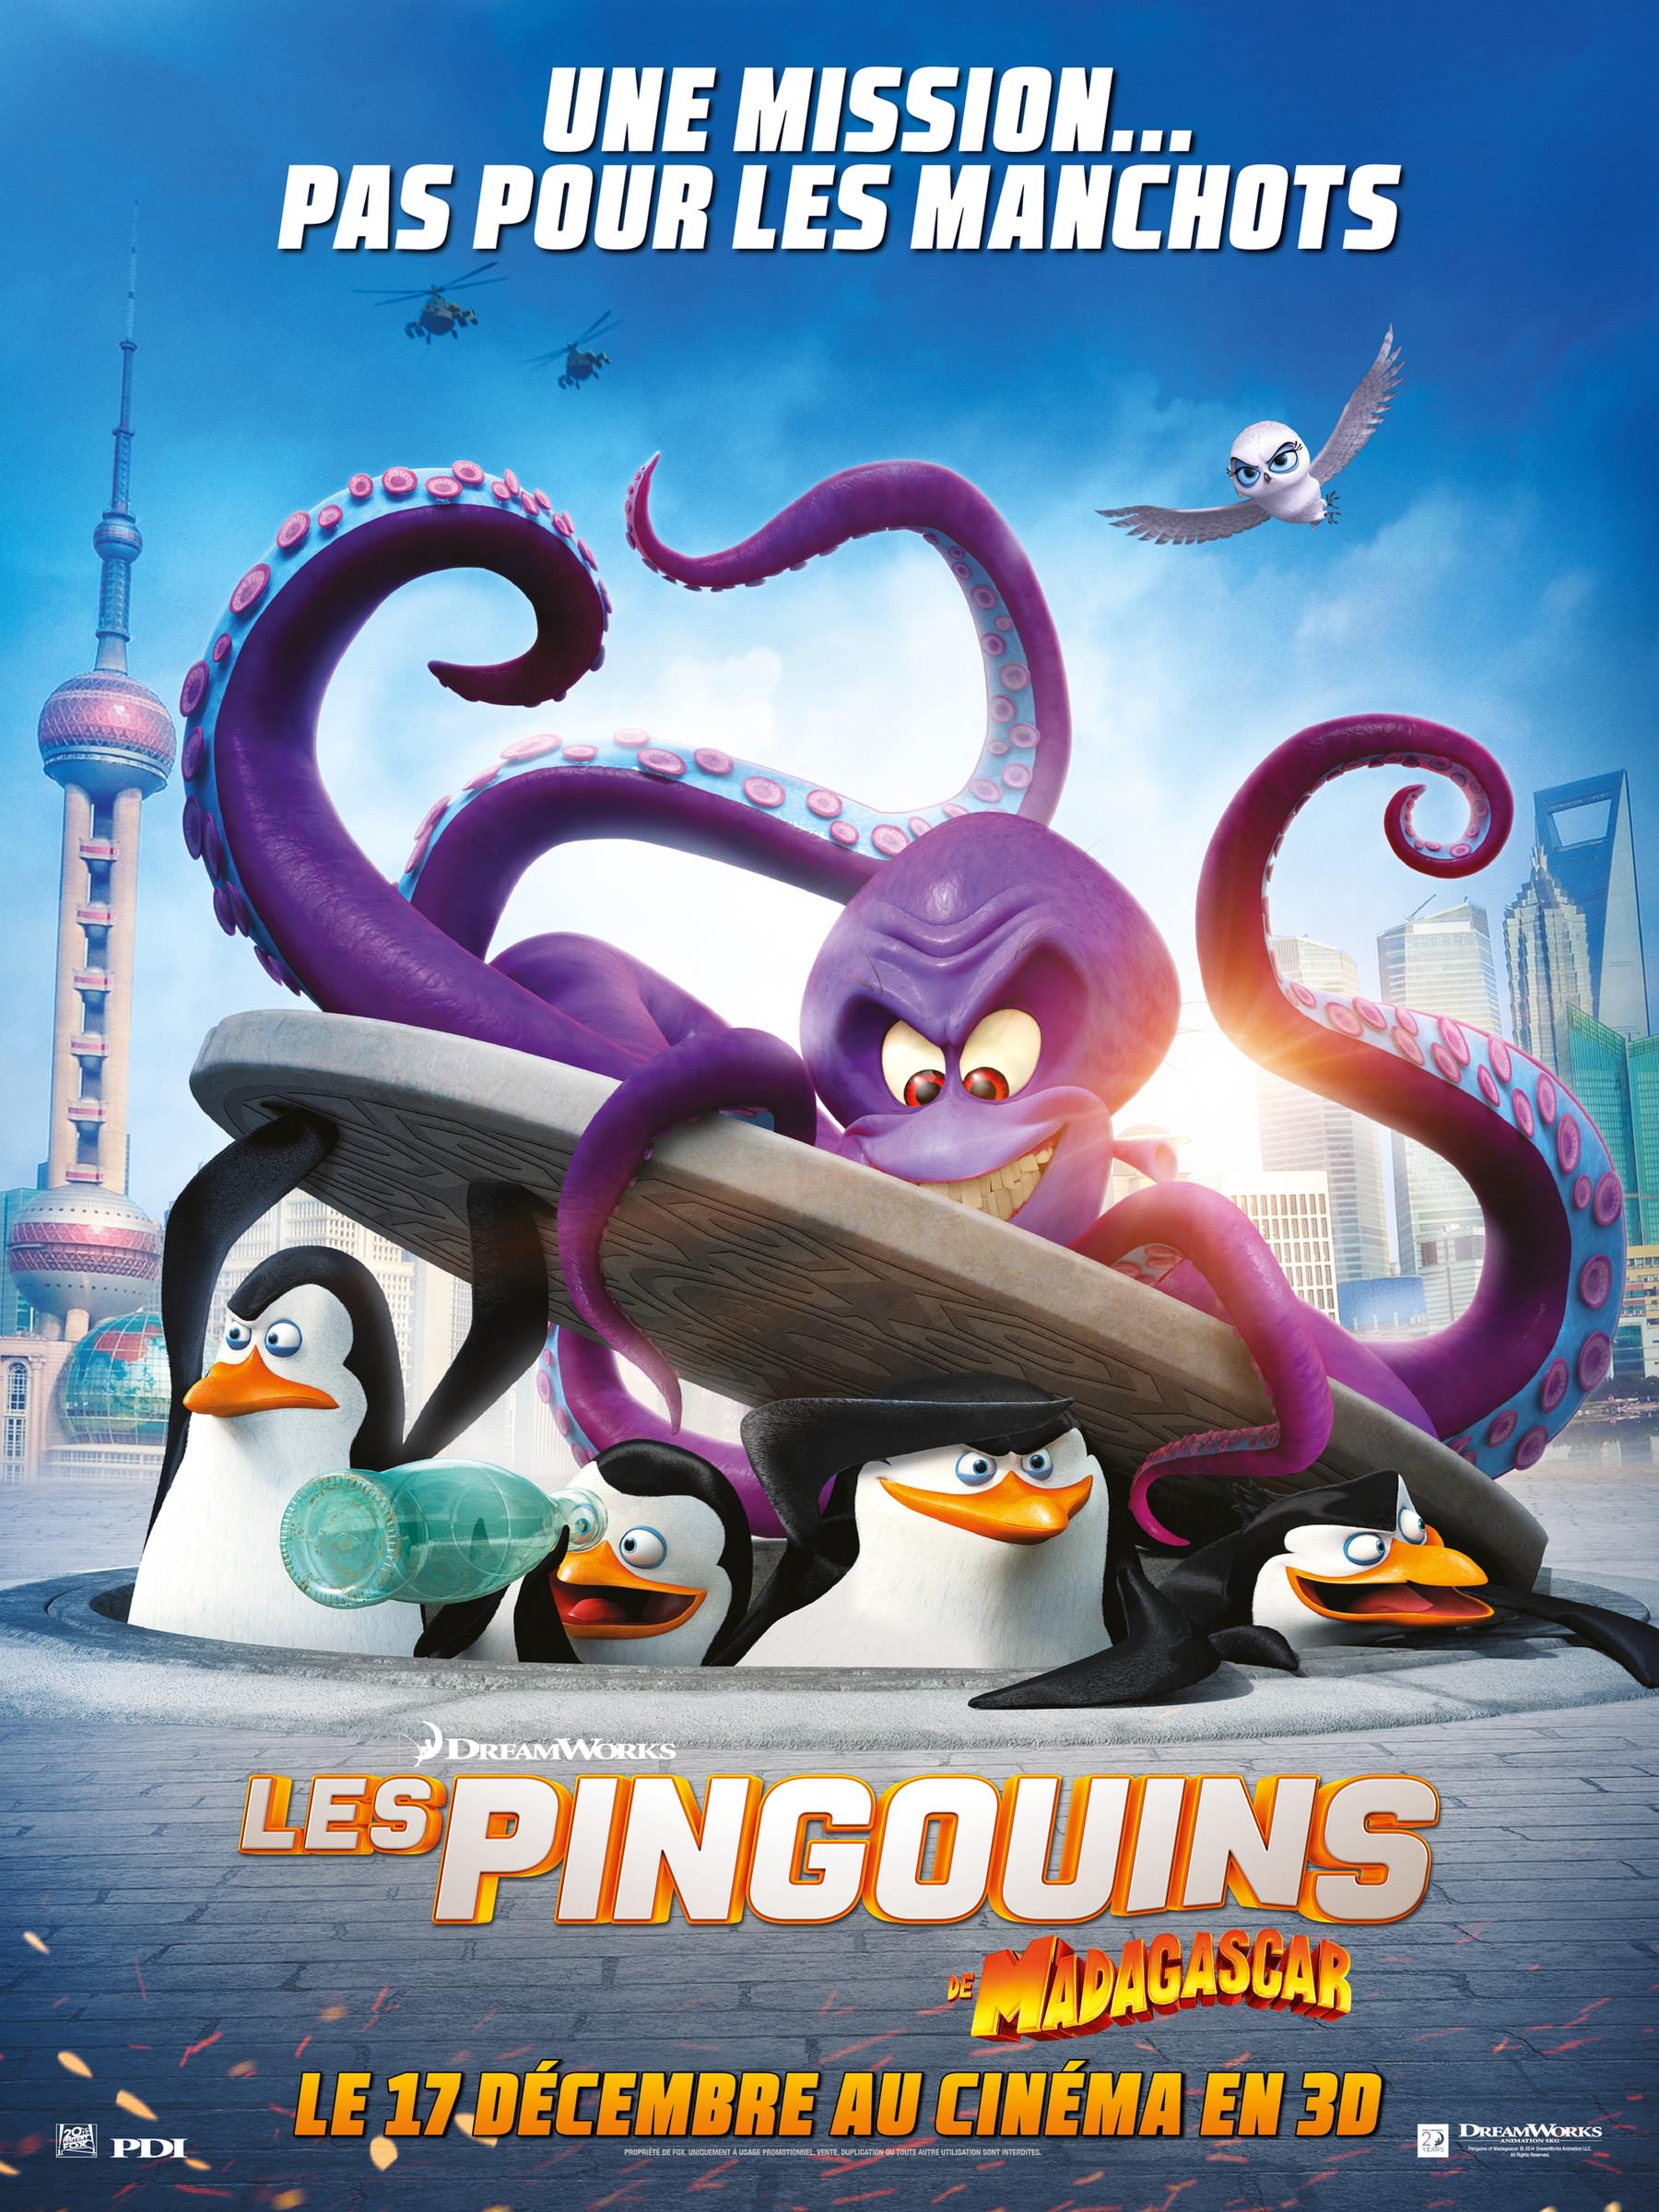 Pingouins madagascar smith darnell